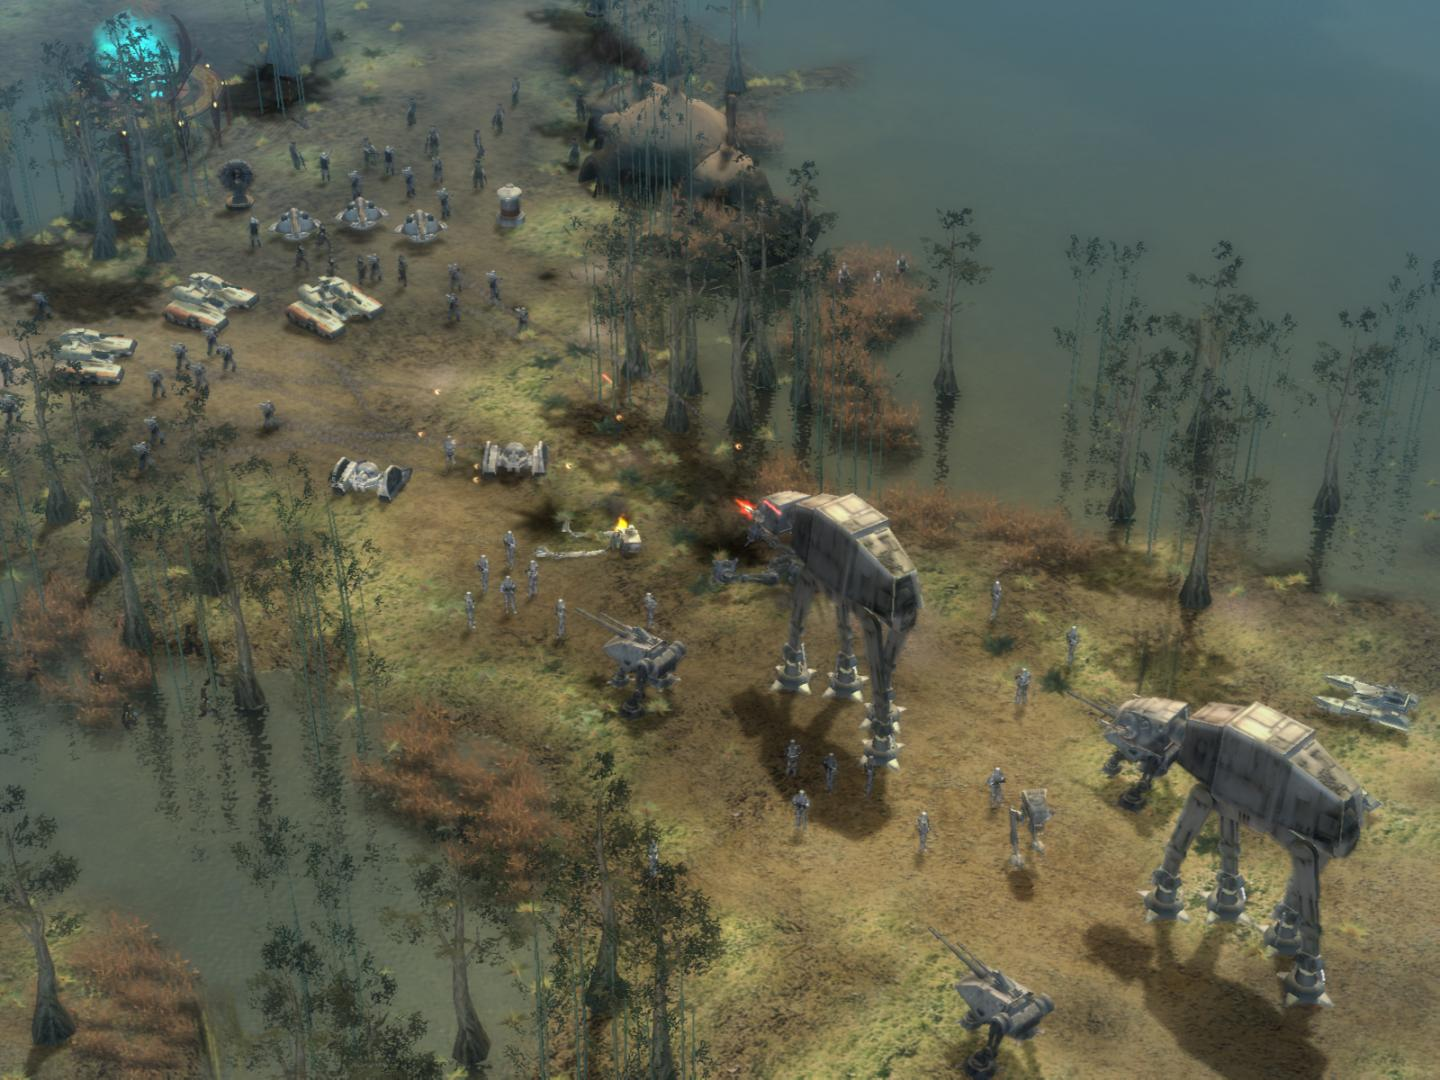 Star Wars fans finally get to play a strategy game worthy of the license.